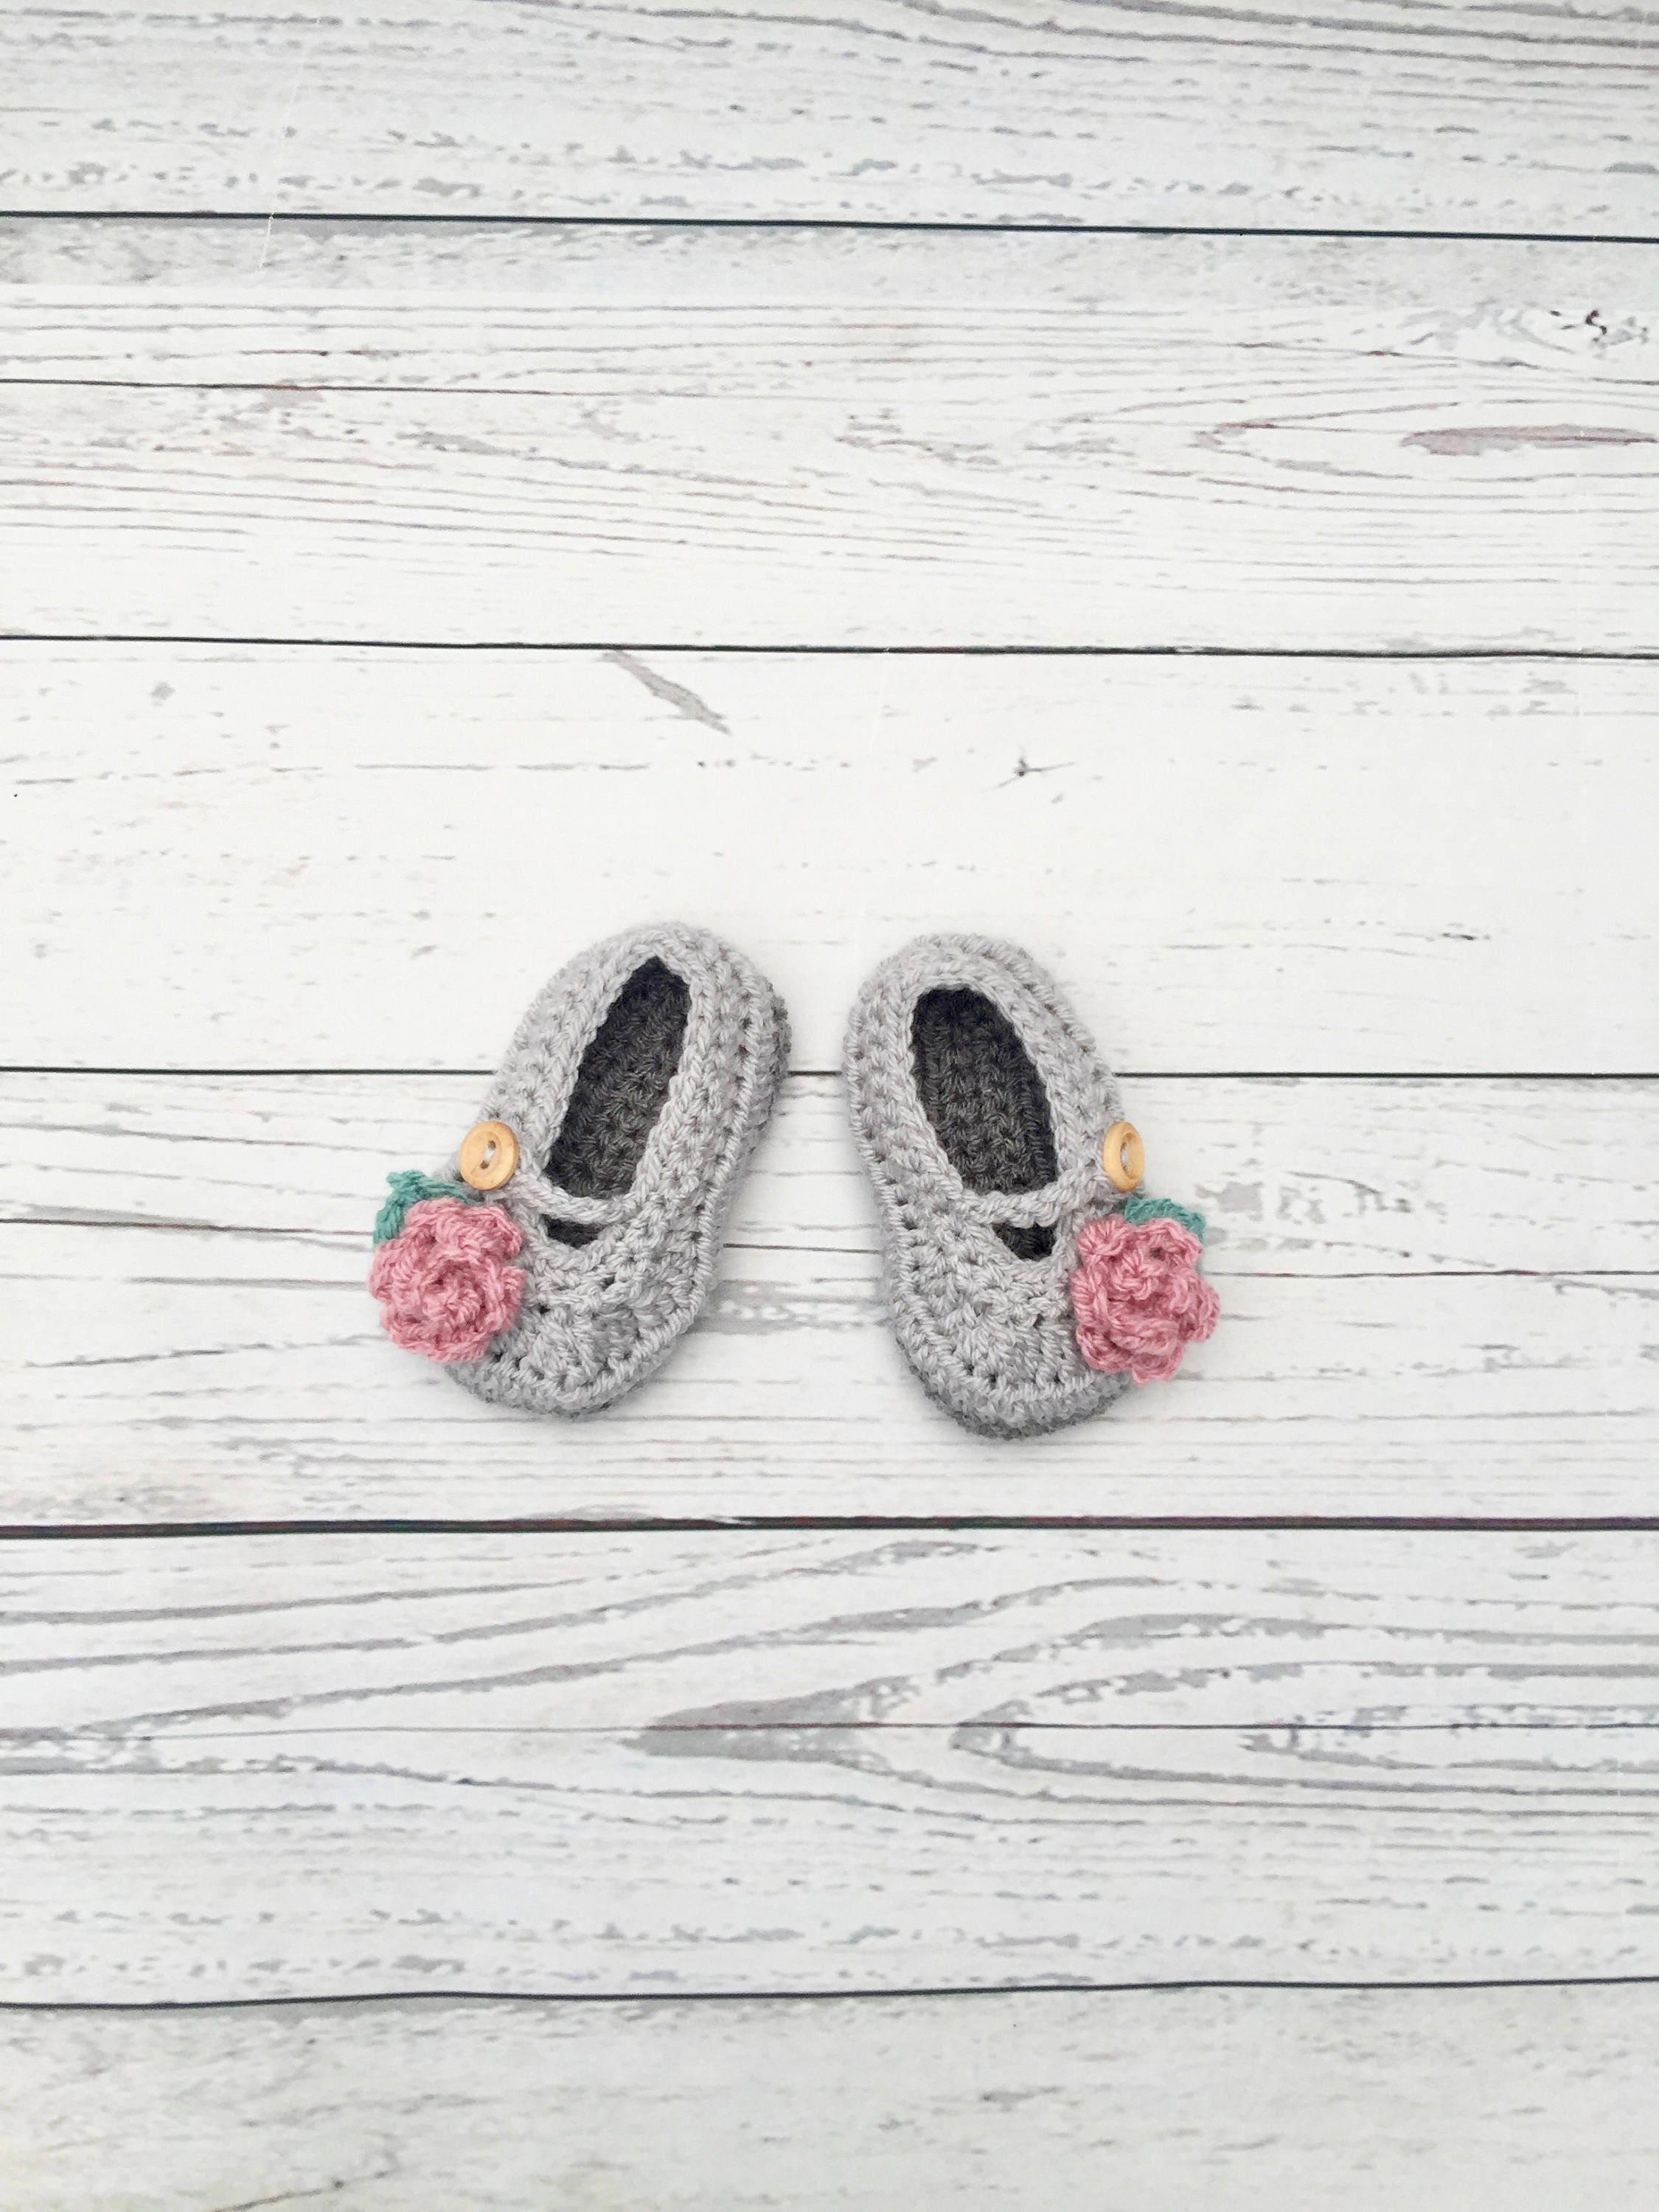 crochet baby girl shoes grey pink shoes newborn crochet infant shoes christening shoes soft sole shoes